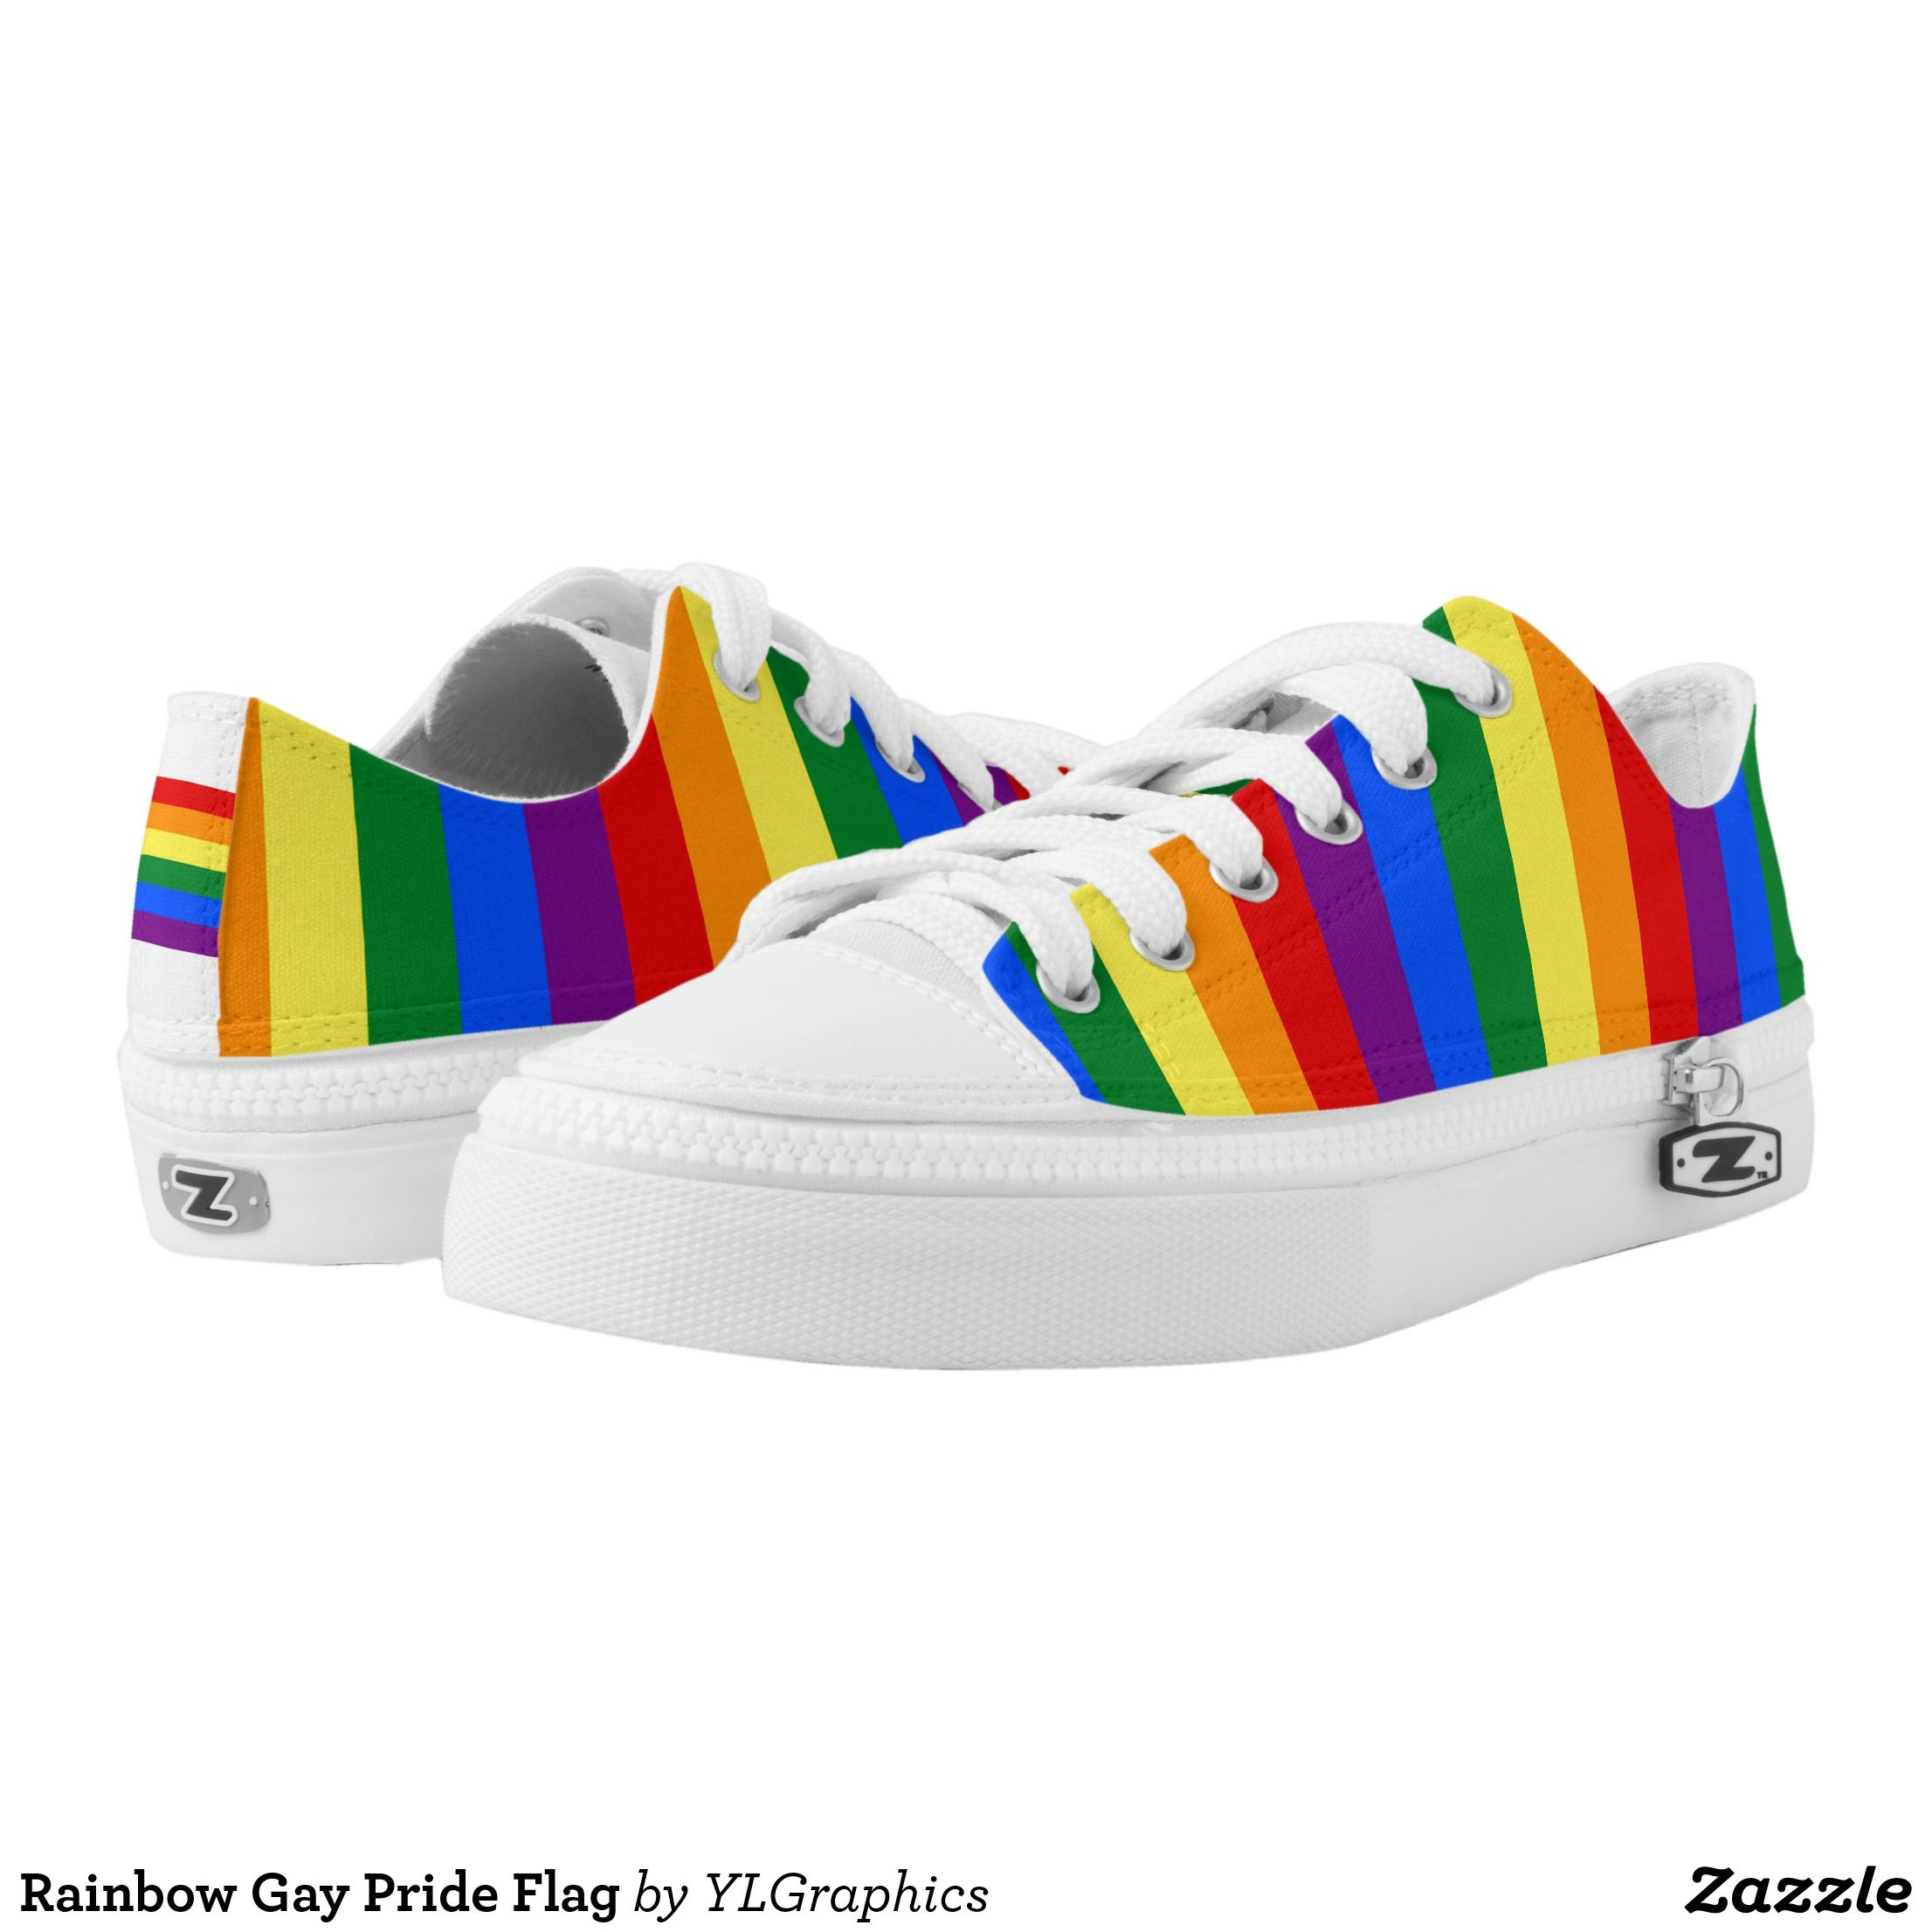 7699e53a2a9b Rainbow Gay Pride Flag Low-Top Sneakers - Canvas-Top Rubber-Sole Athletic  Shoes By Talented Fashion And Graphic Designers - #shoes #sneakers  #footwear ...